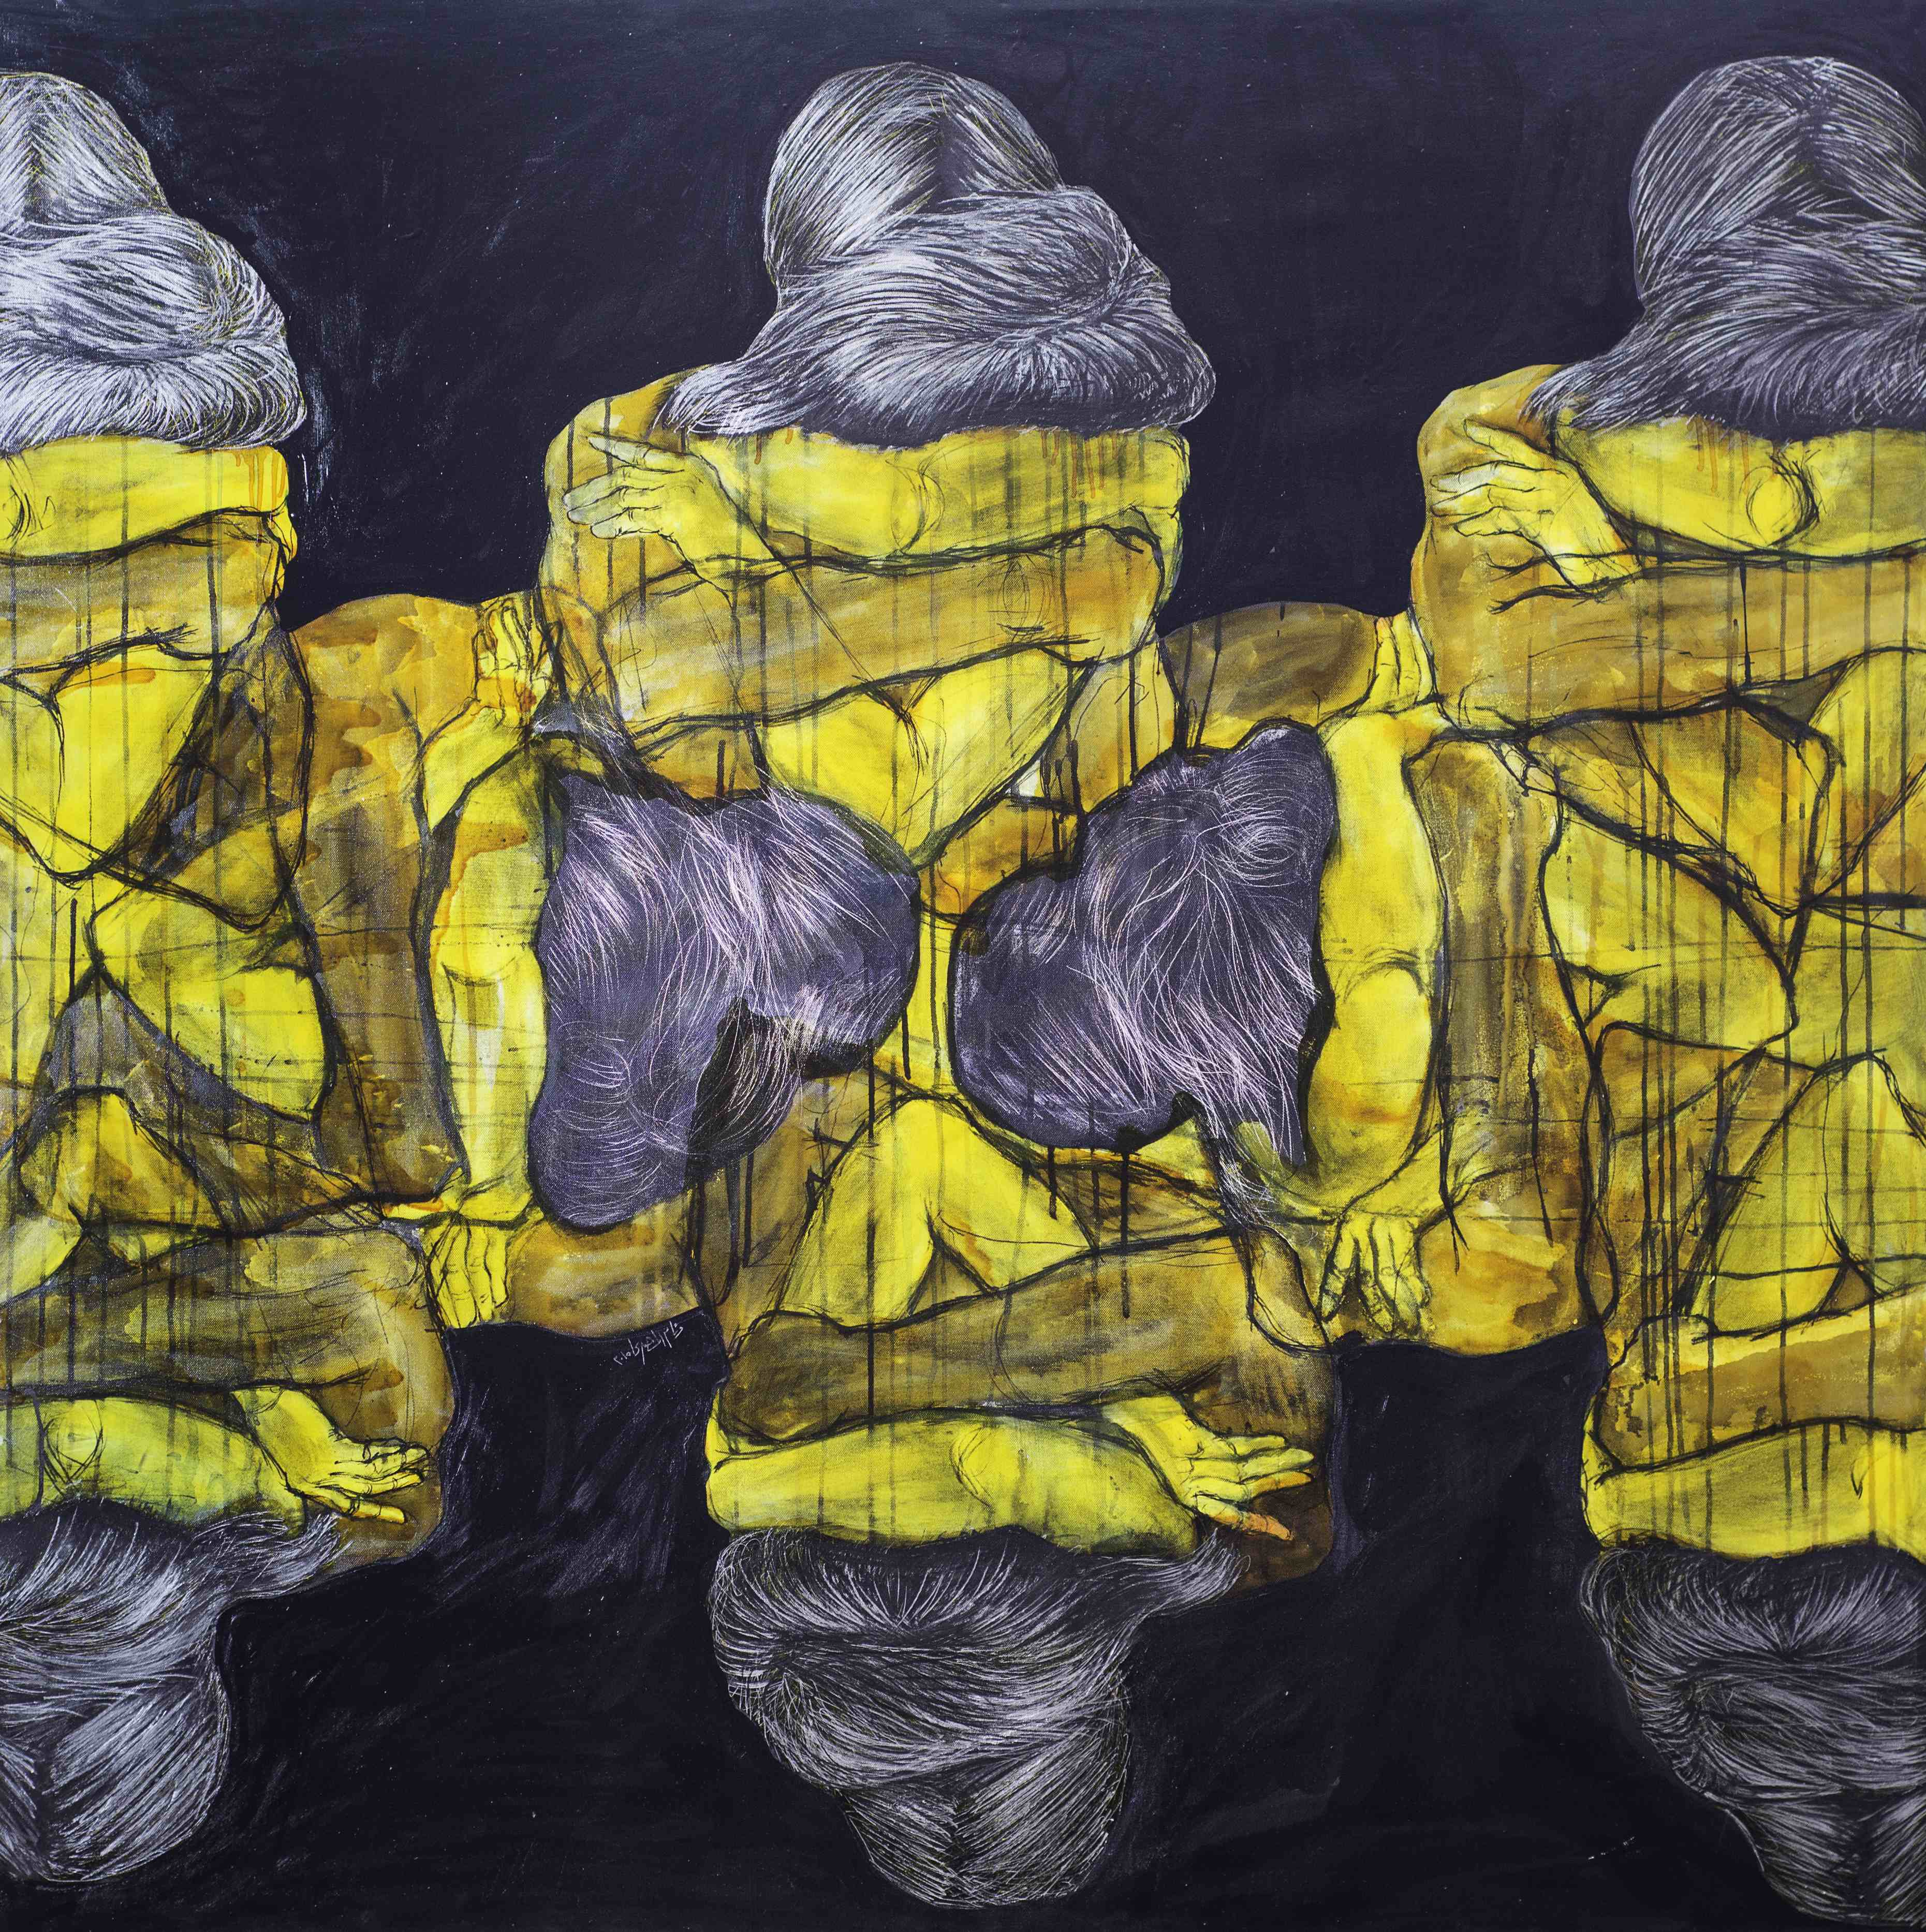 Weaam El Masry A Whole Harem, 2015 mixed media on canvas | 150 x 150 cm